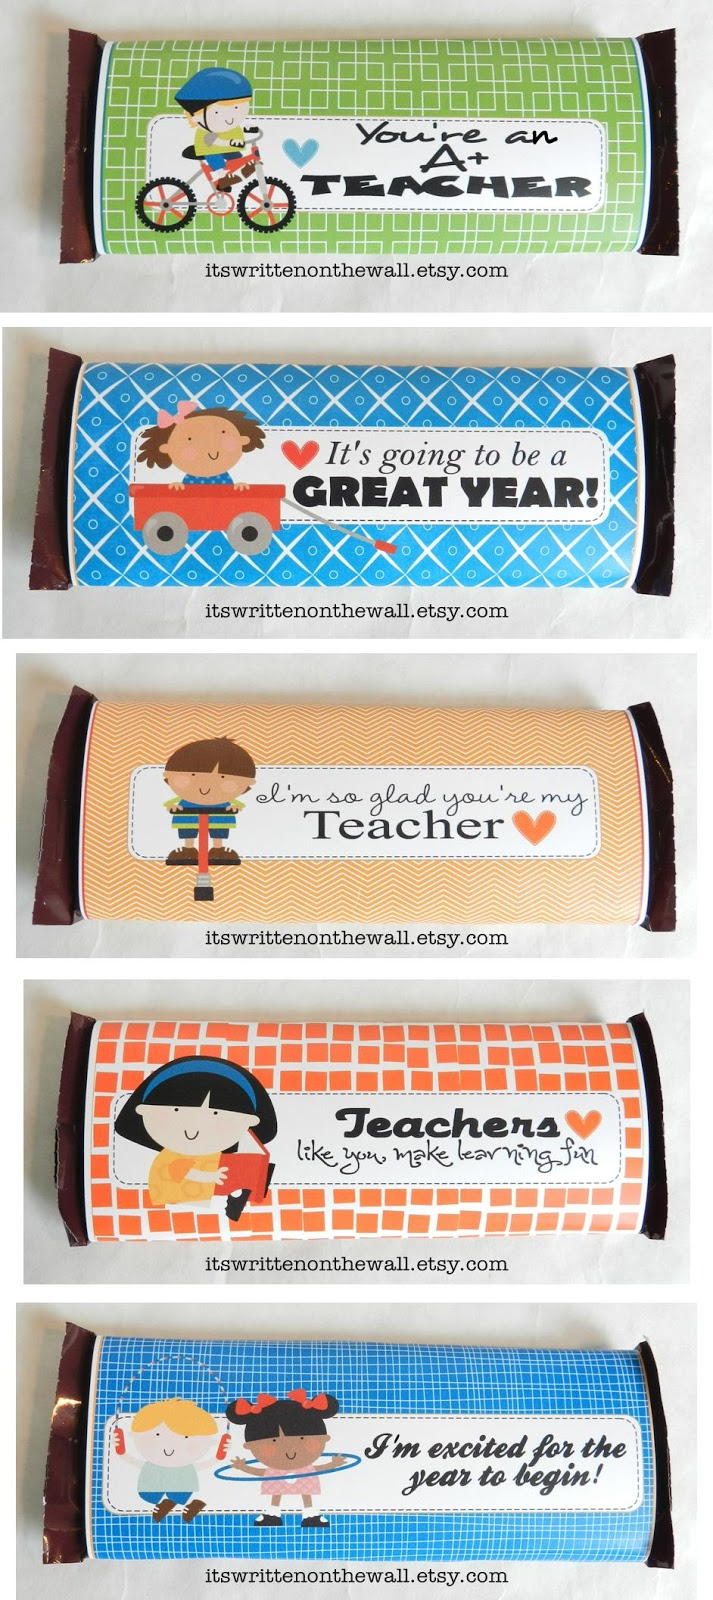 It's Written on the Wall: 10 Teacher Appreciation Gifts-Hershey Candy Bar Wraps-Excellent Gift ...